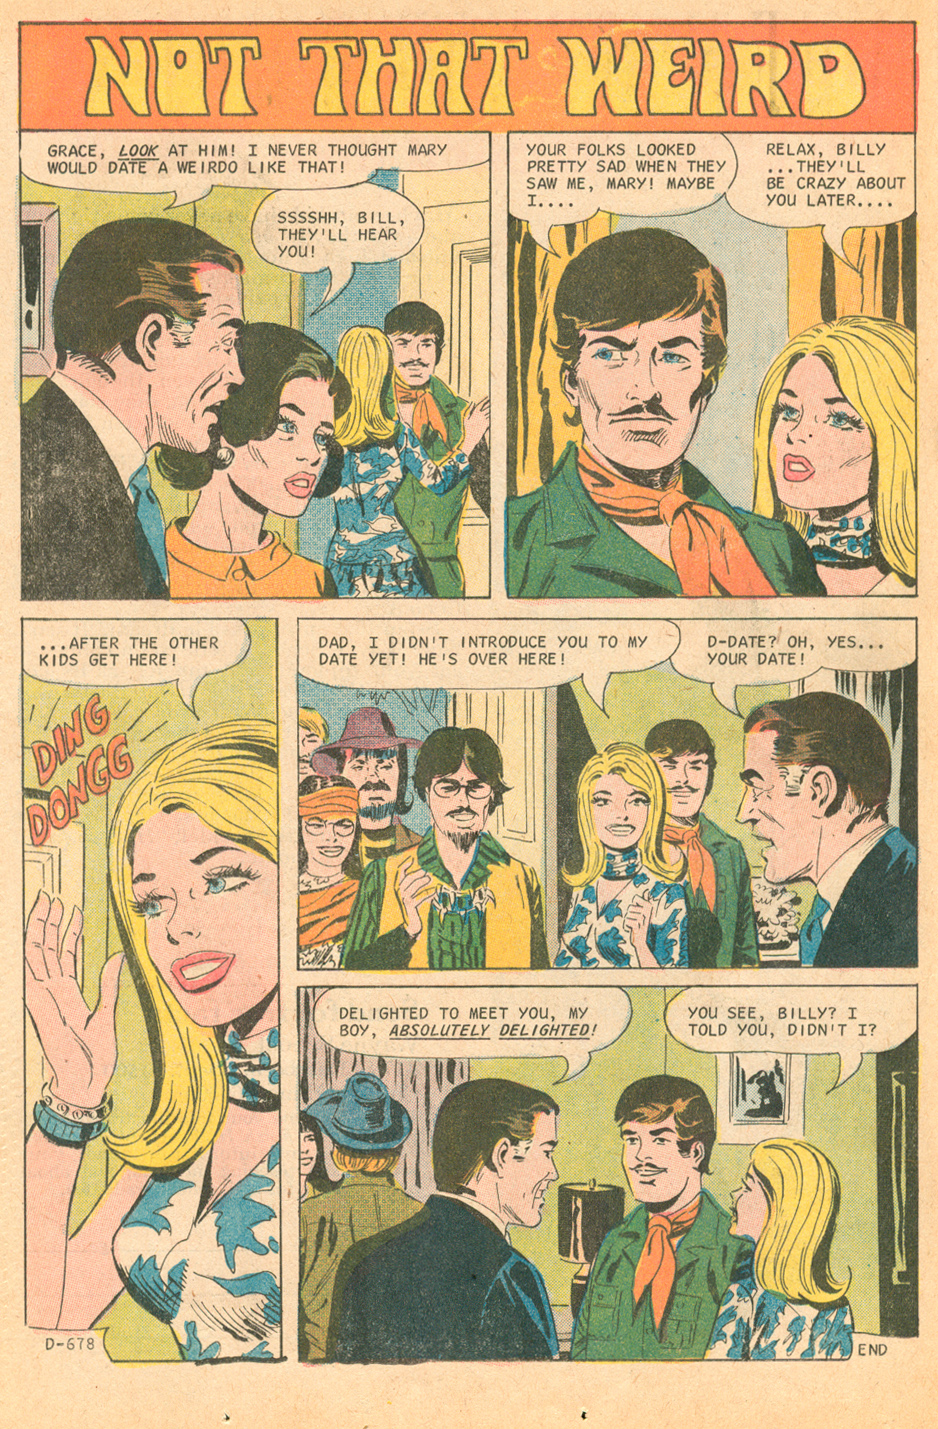 """Not That Weird""  Time for Love  #22 (May 1971) Pencils: Charles Nicholas, Inks: Vincent Alascia"